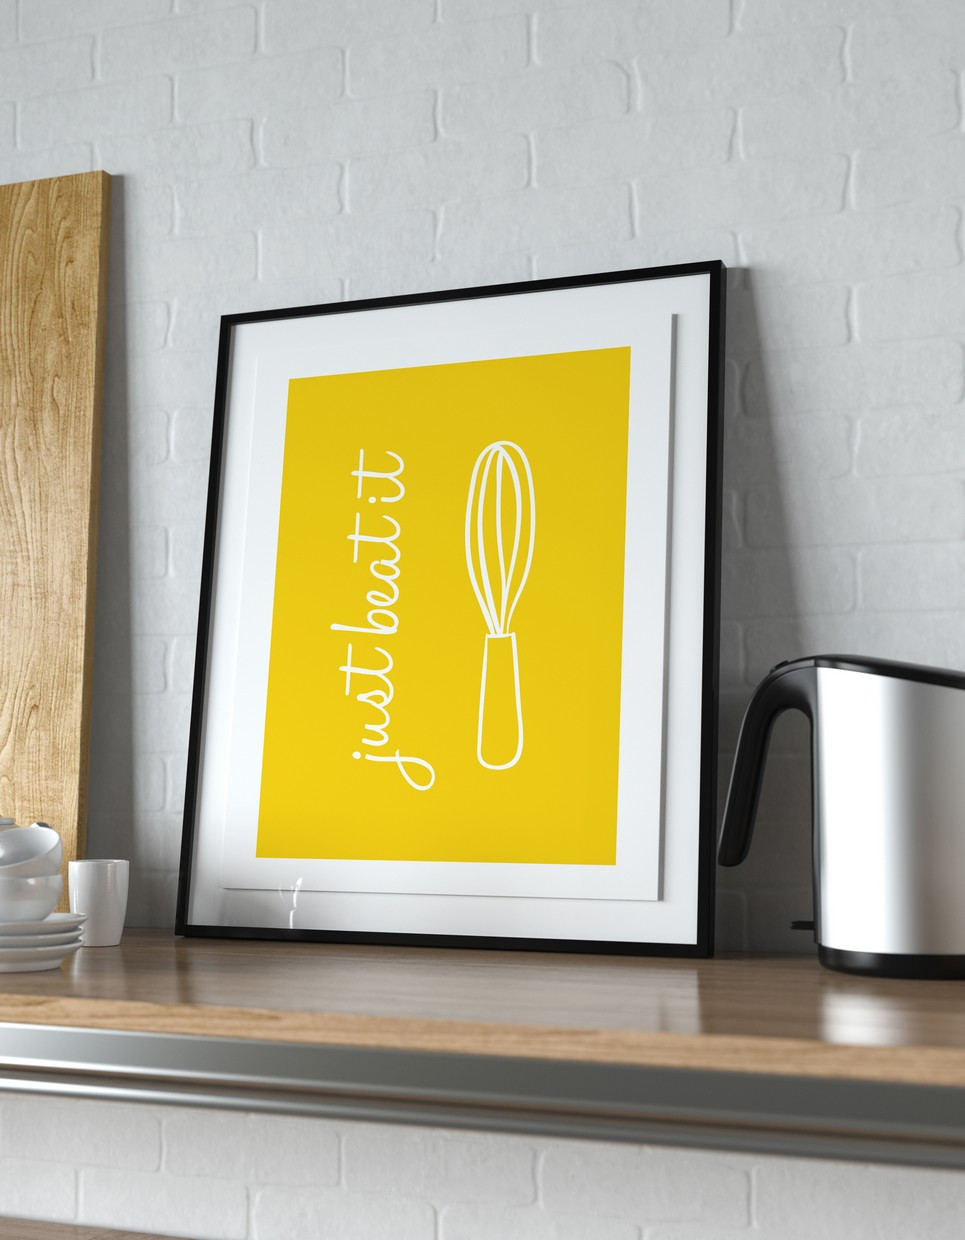 JUST BEAT IT | Wall Decor Poster by A Matter of Style